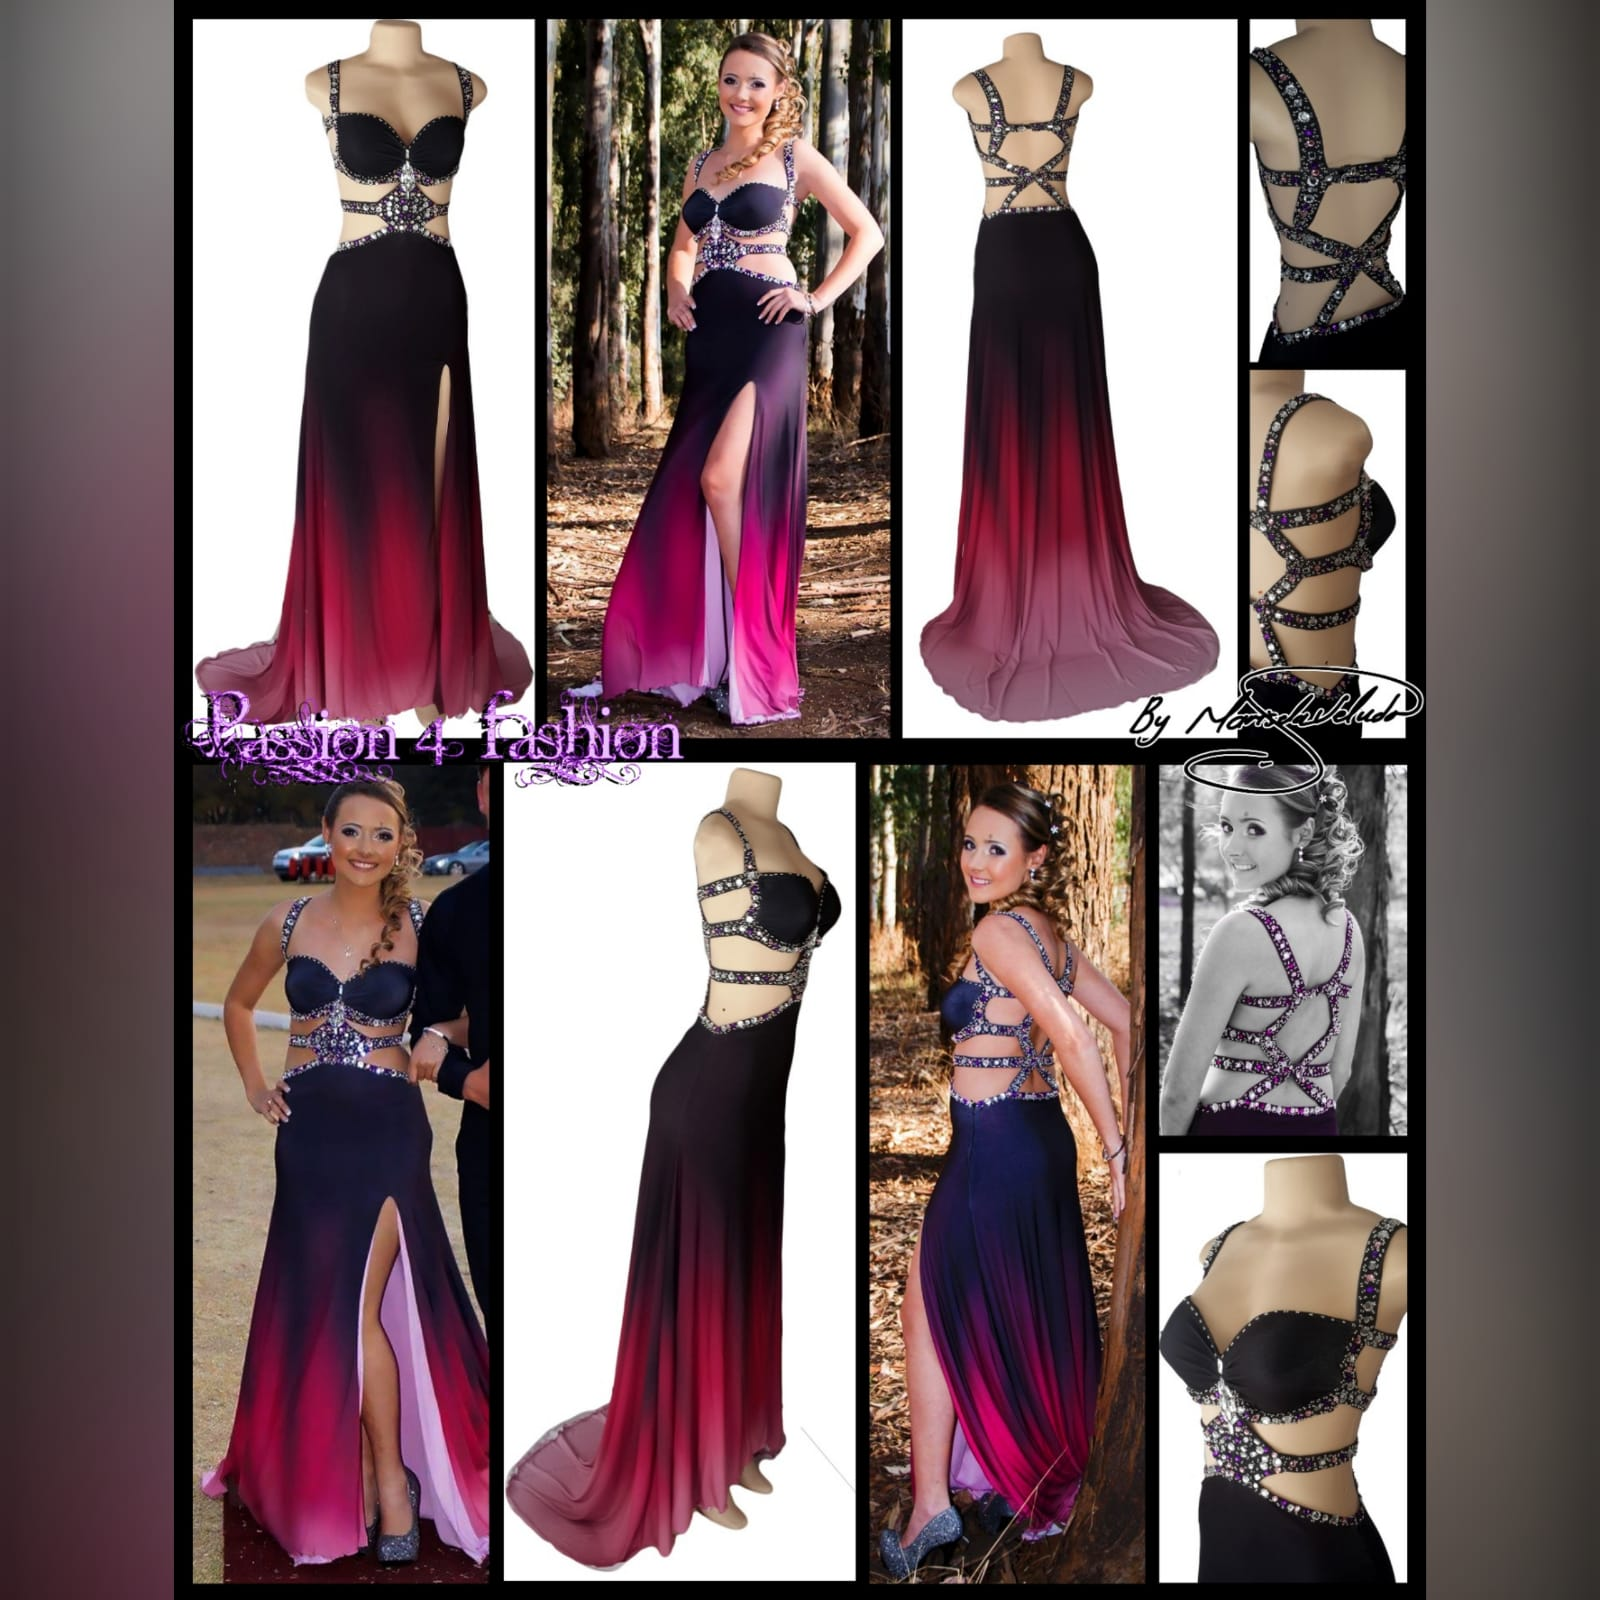 Black pink ombre sexy prom dress 11 black and pink ombre sexy prom dress. With a slit and a train. With tummy and back openings detailed with silver and pink beads.